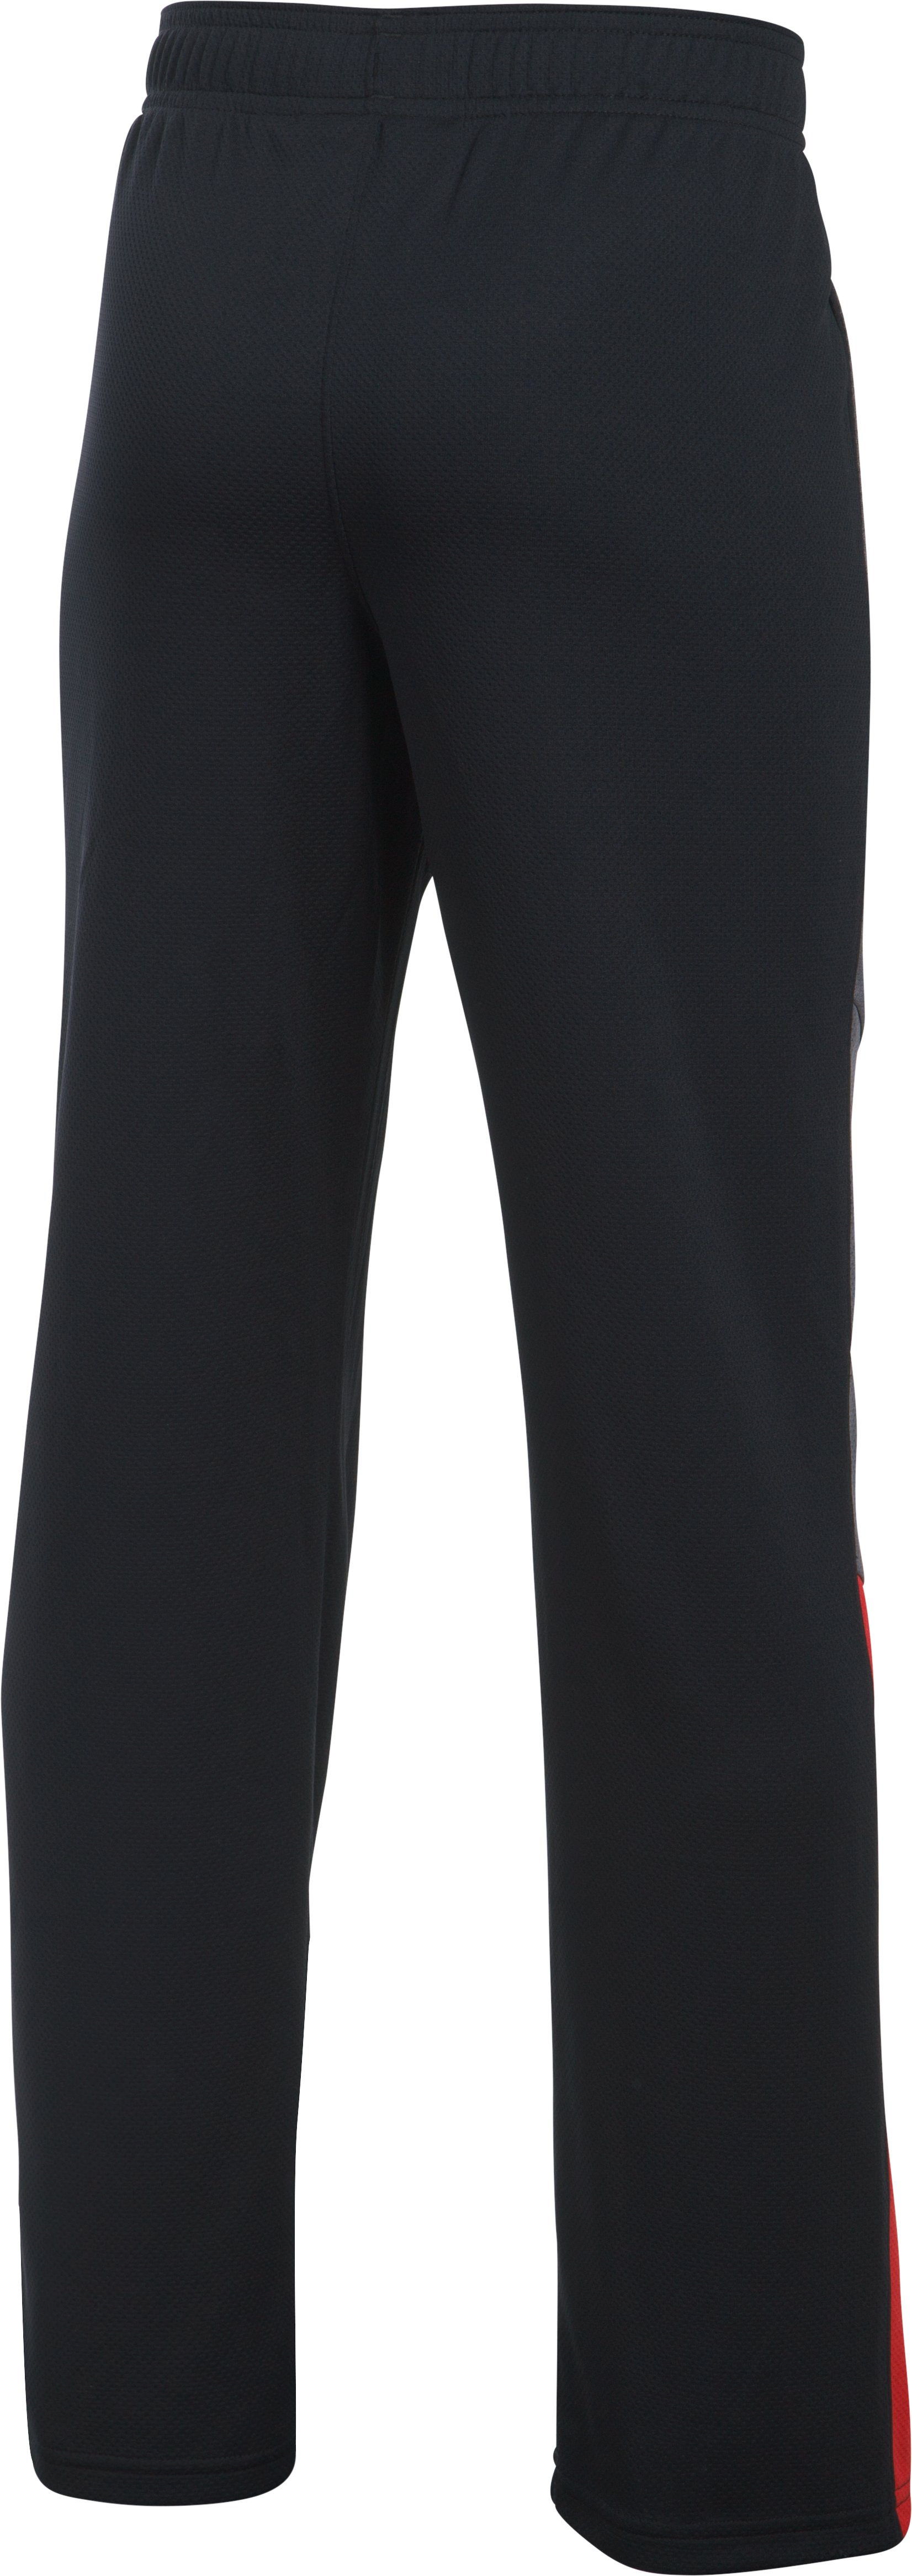 Boys' UA Advantage Warm-Up Pants, Black , undefined